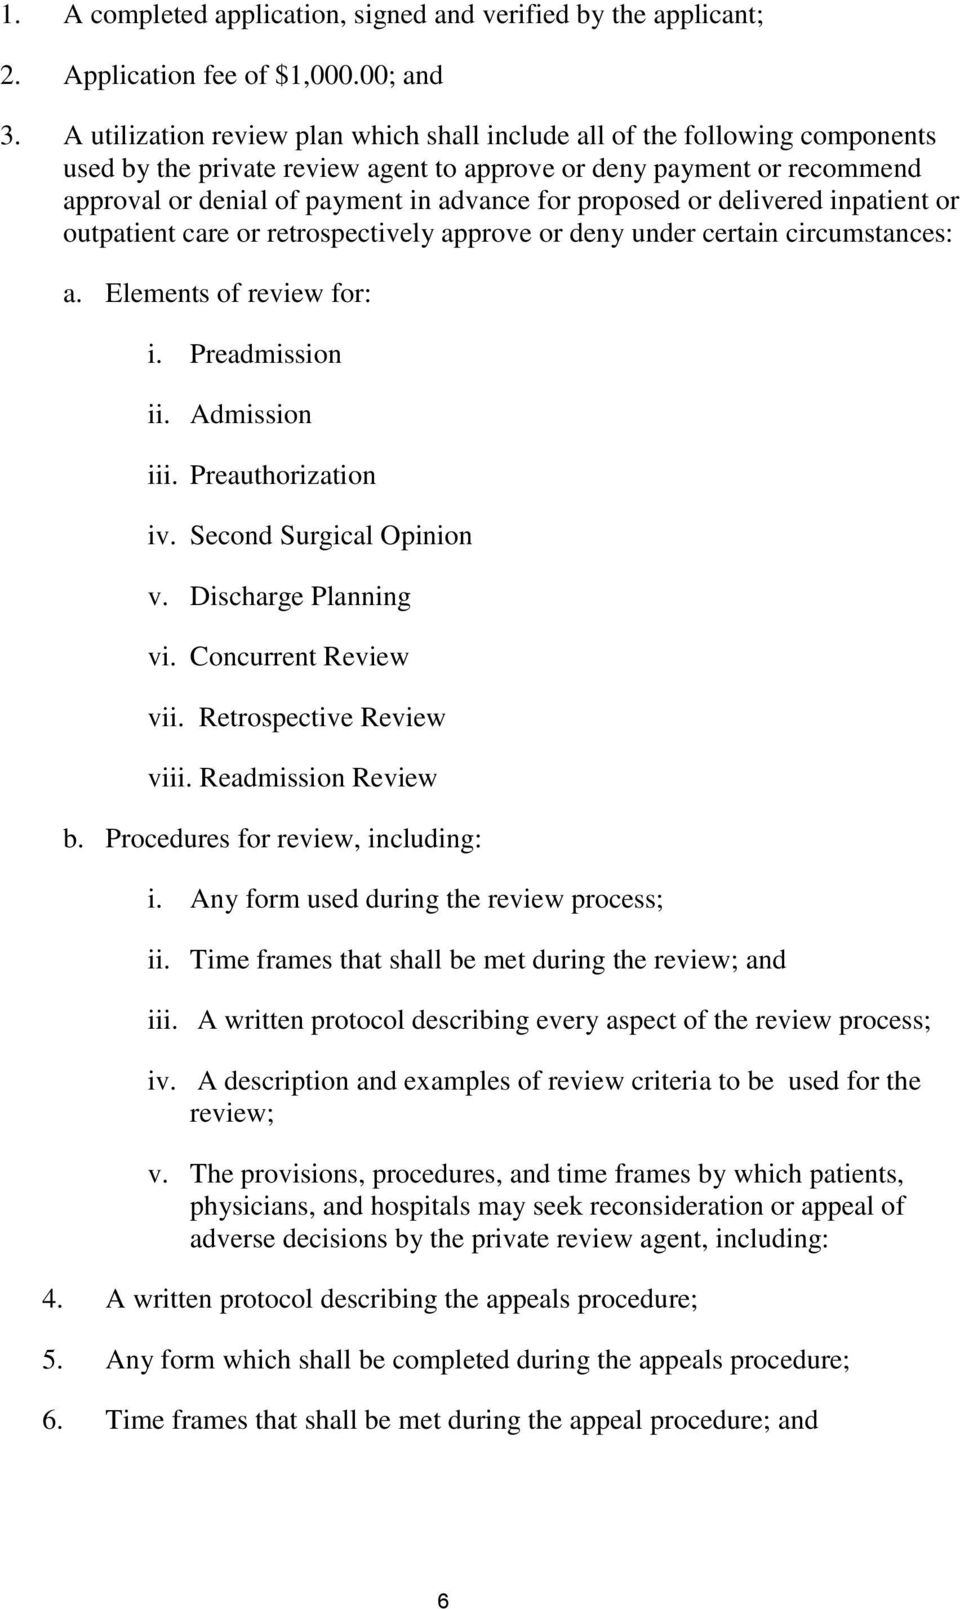 proposed or delivered inpatient or outpatient care or retrospectively approve or deny under certain circumstances: a. Elements of review for: i. Preadmission ii. Admission iii. Preauthorization iv.